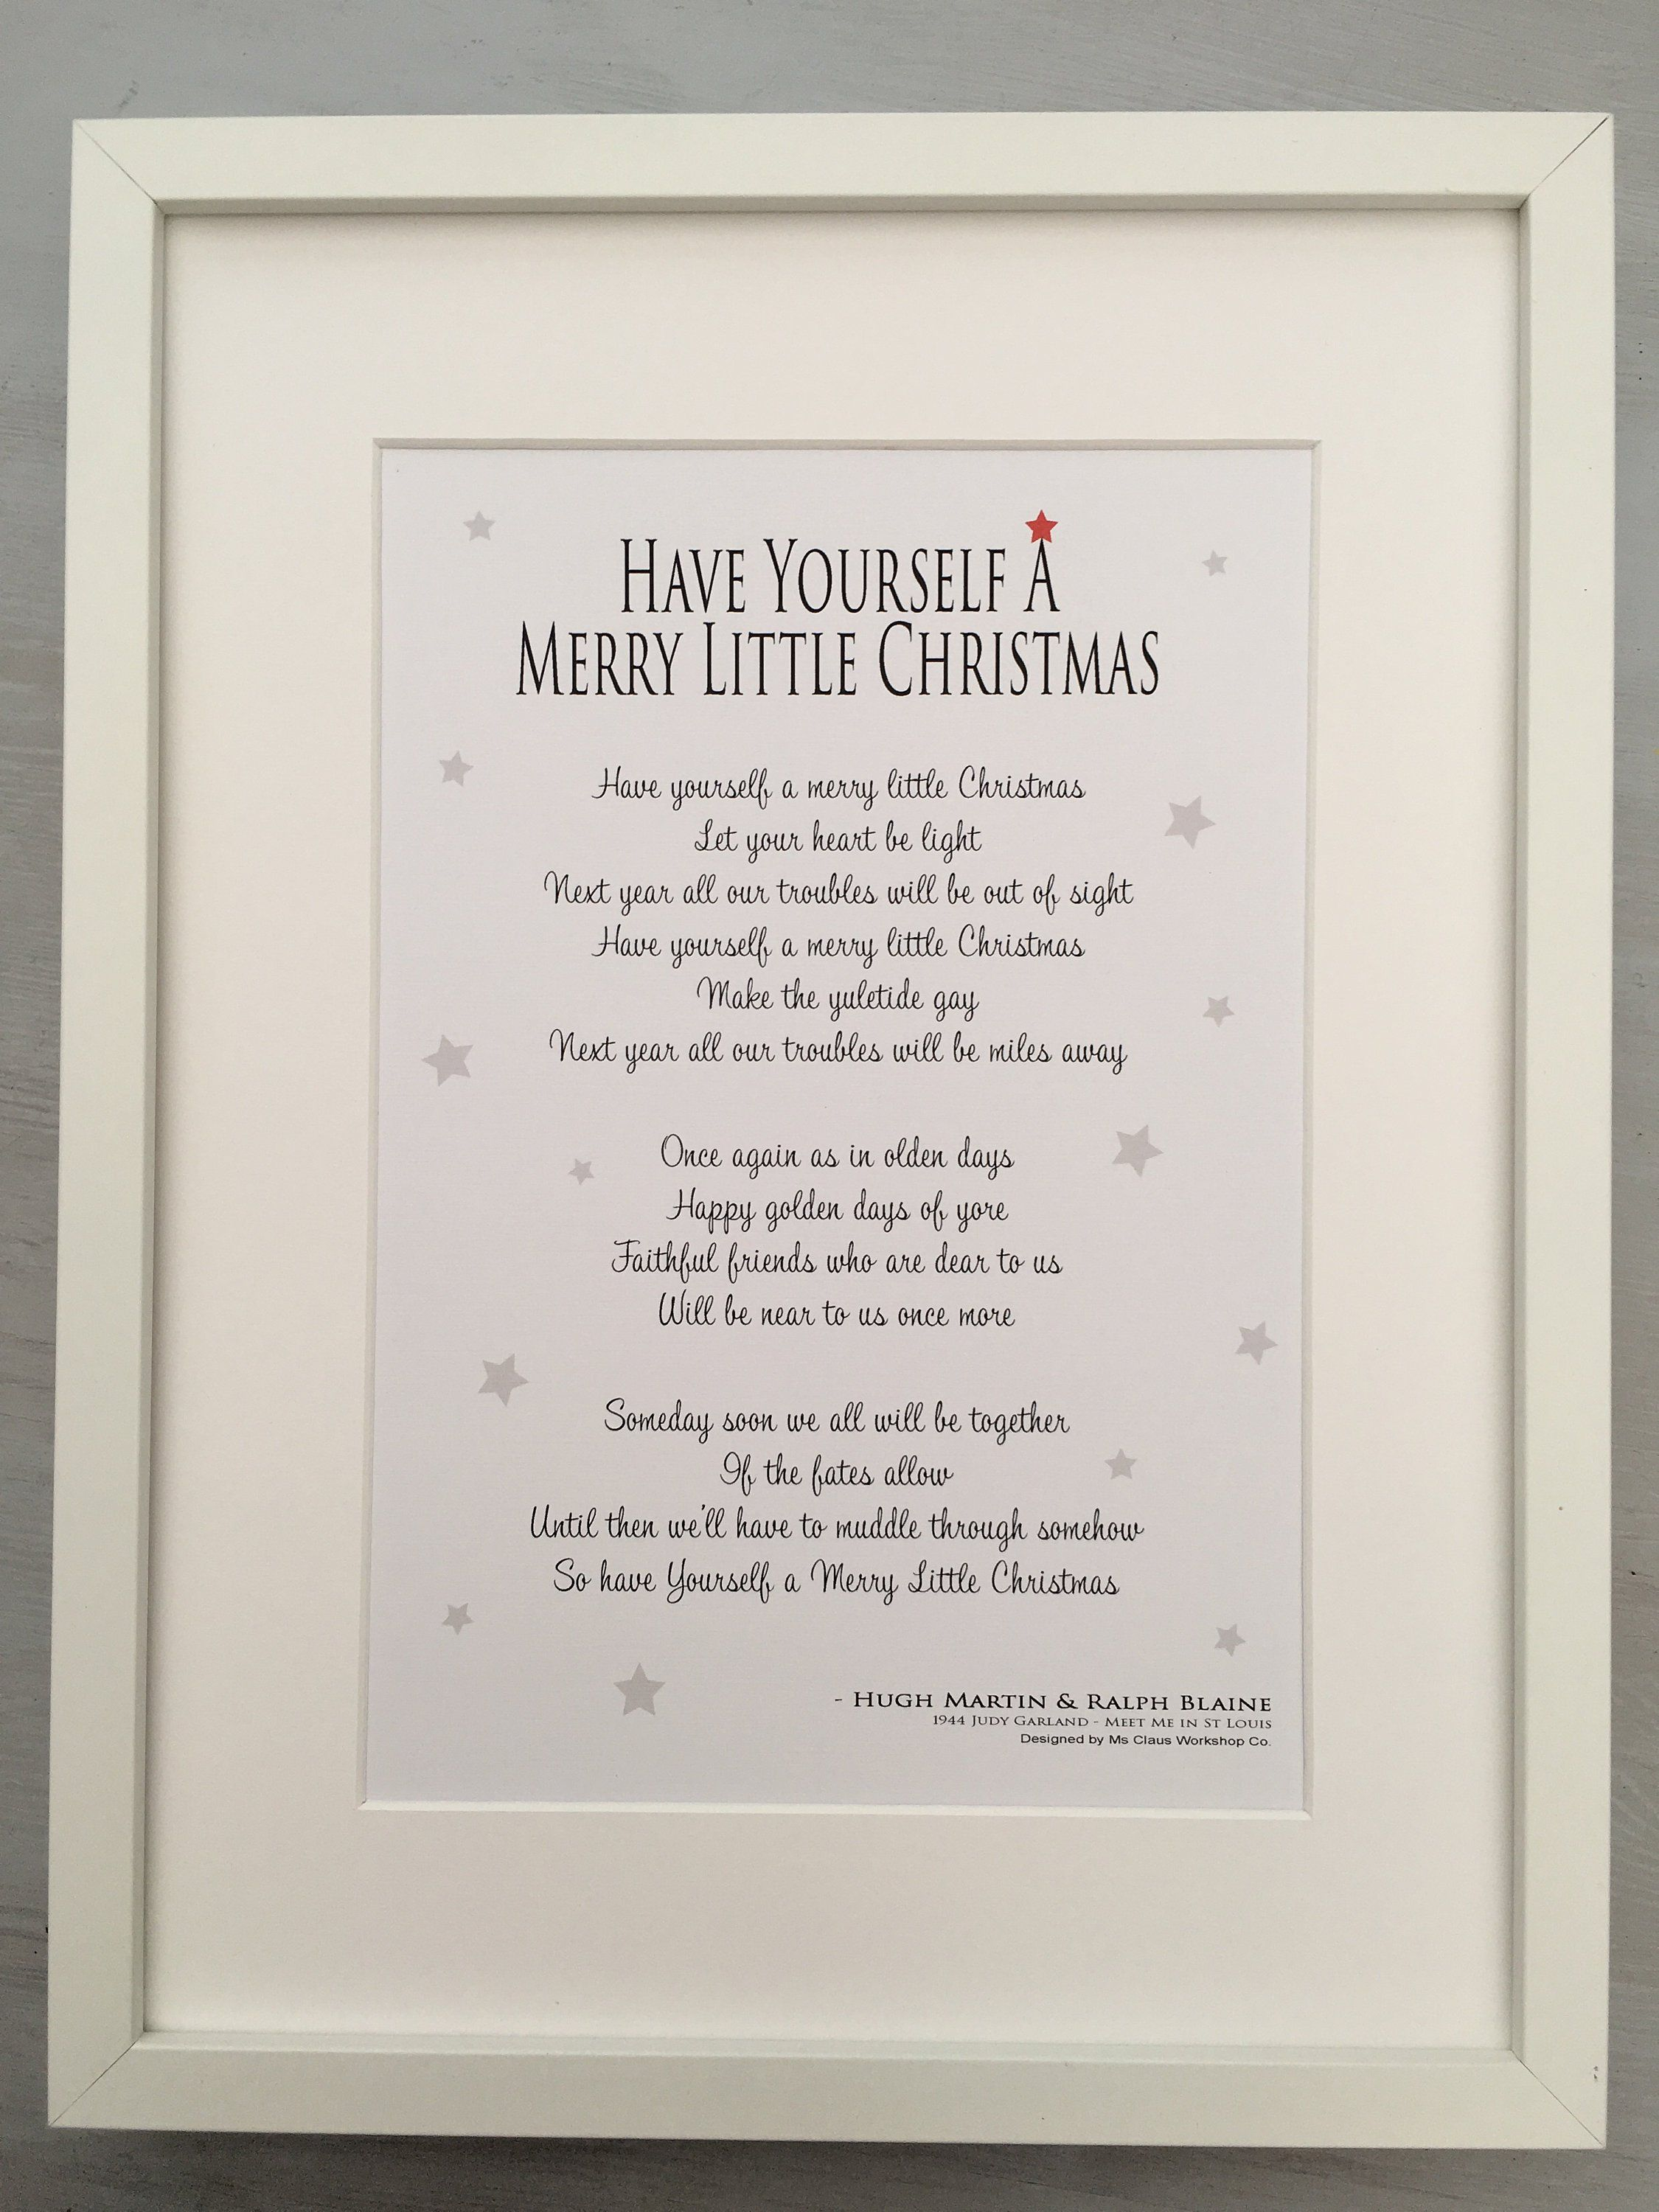 Have Yourself A Merry Little Christmas - Christmas Carol Lyric Song Frame or Print Gift | Merry ...